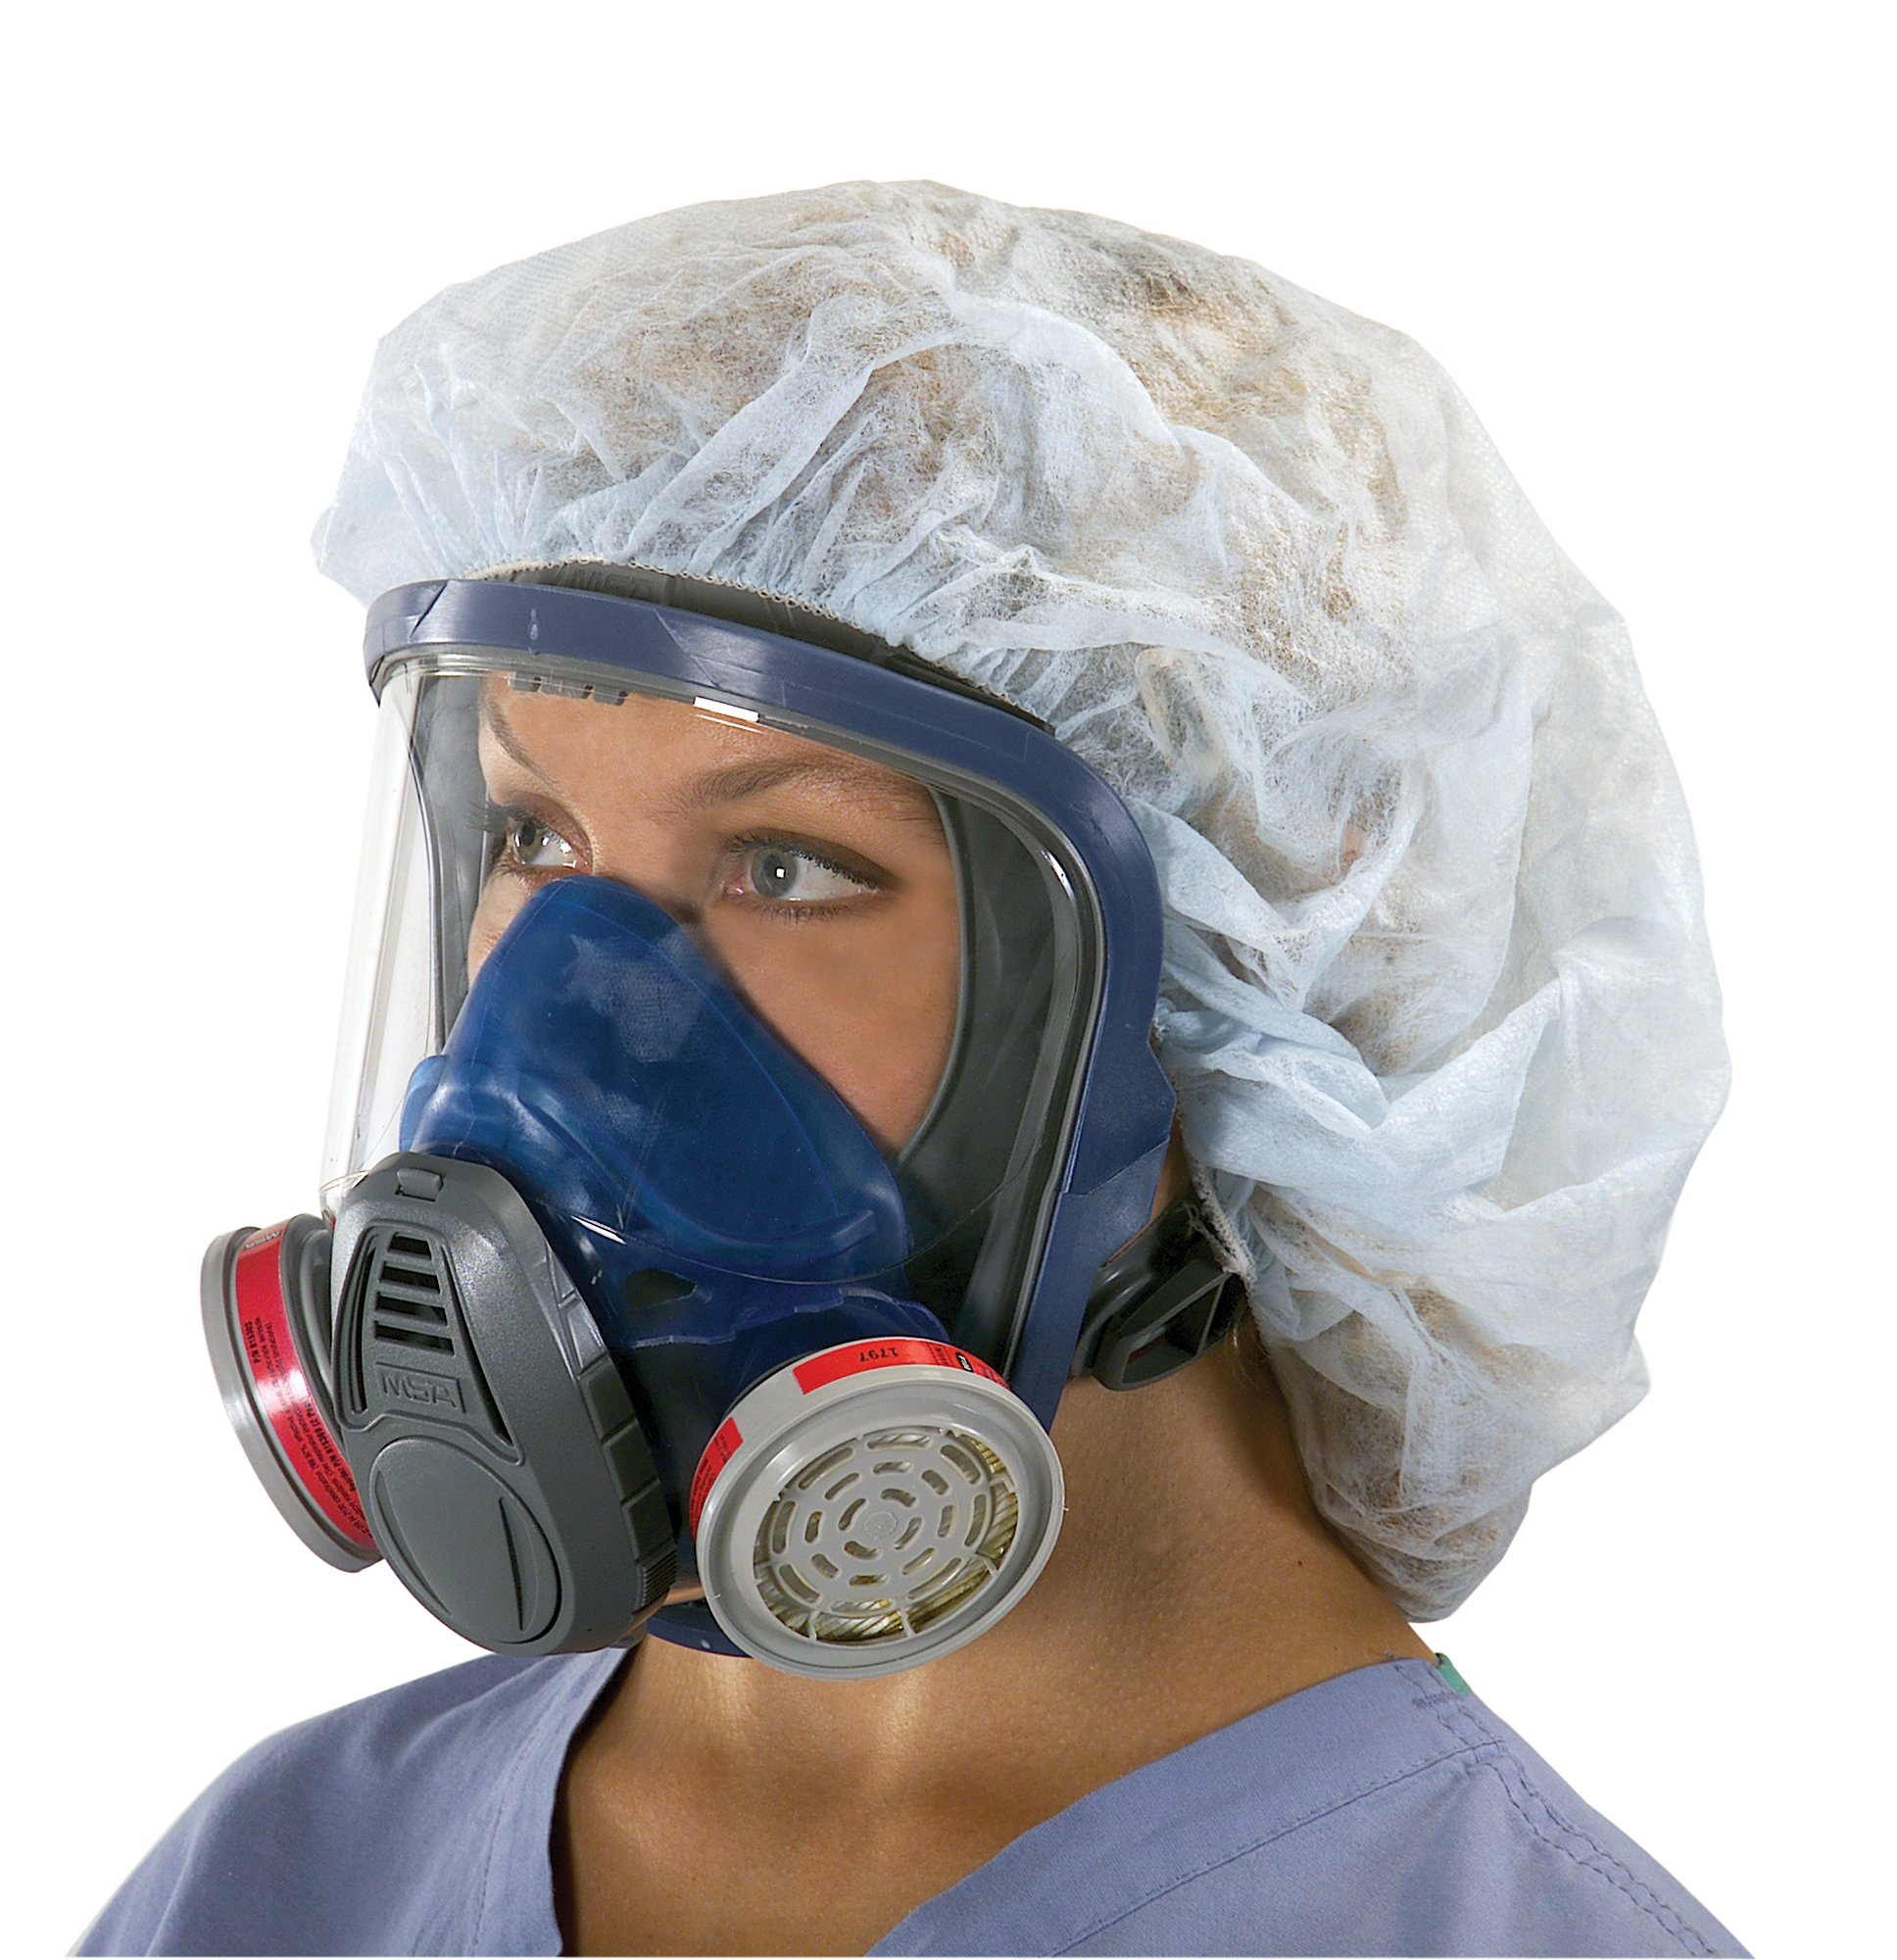 MSA Safety 10028995 Advantage 3200 Full-Facepiece Respirator with Rubber Harness, Medium by MSA